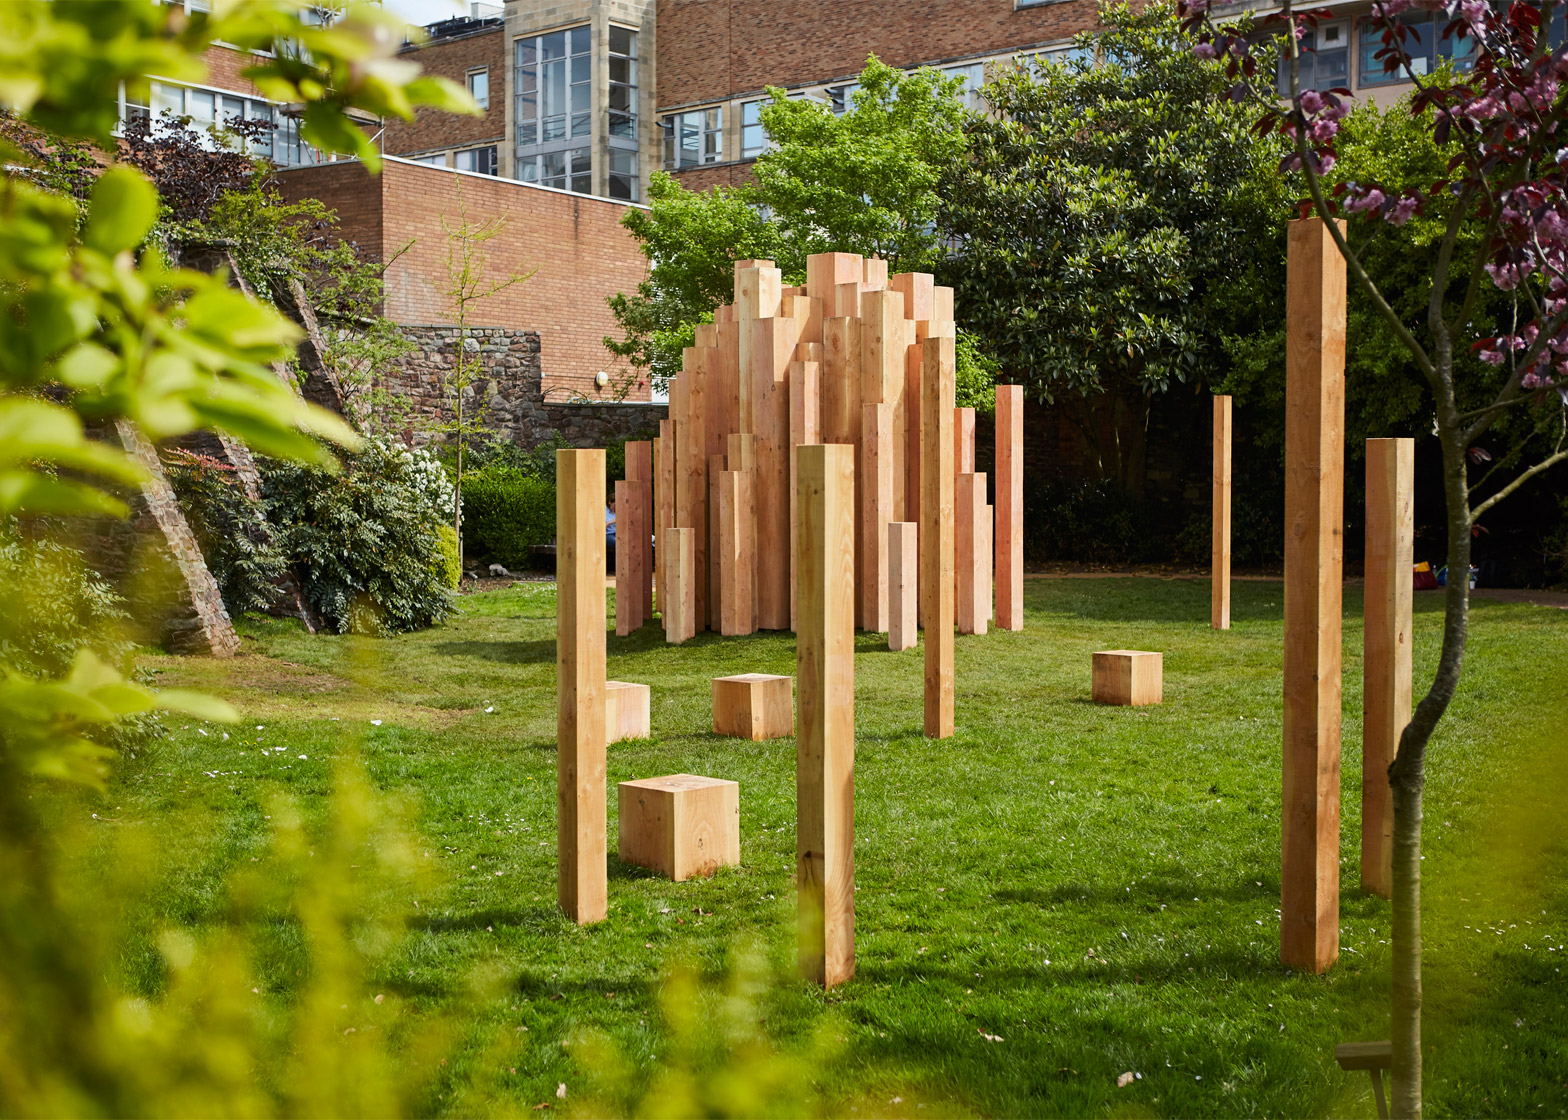 Hollow installation by Zeller & Moye & Katie Paterson